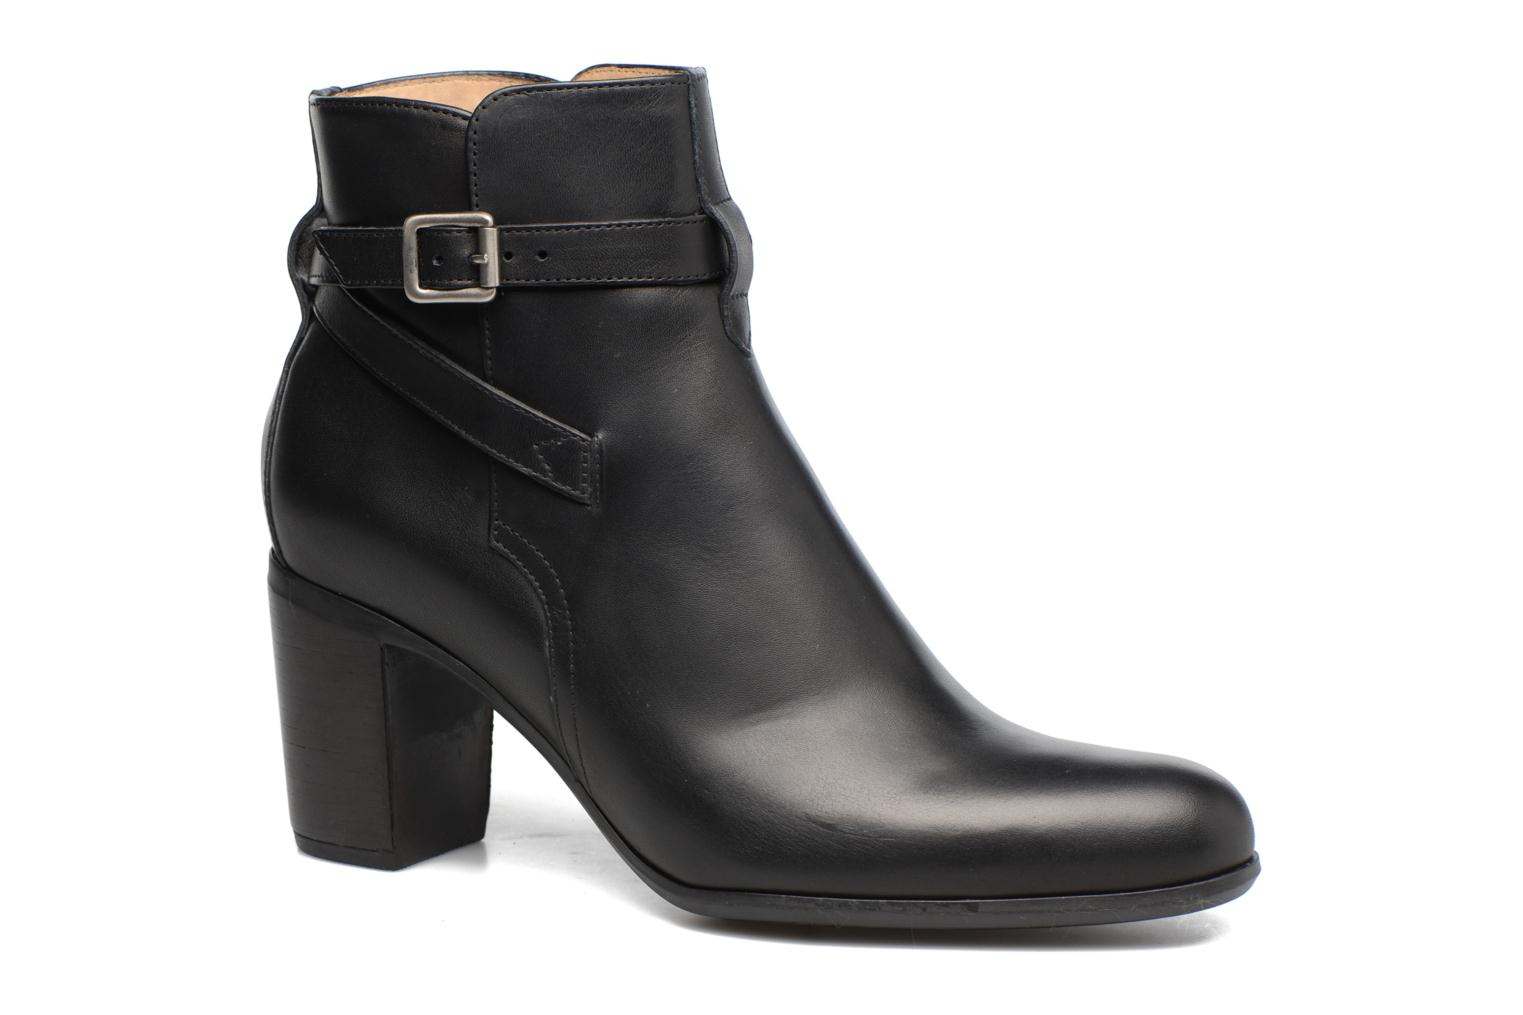 BALZA 7 BOOT STRAP CUIR LUBBOCK by Free Lance